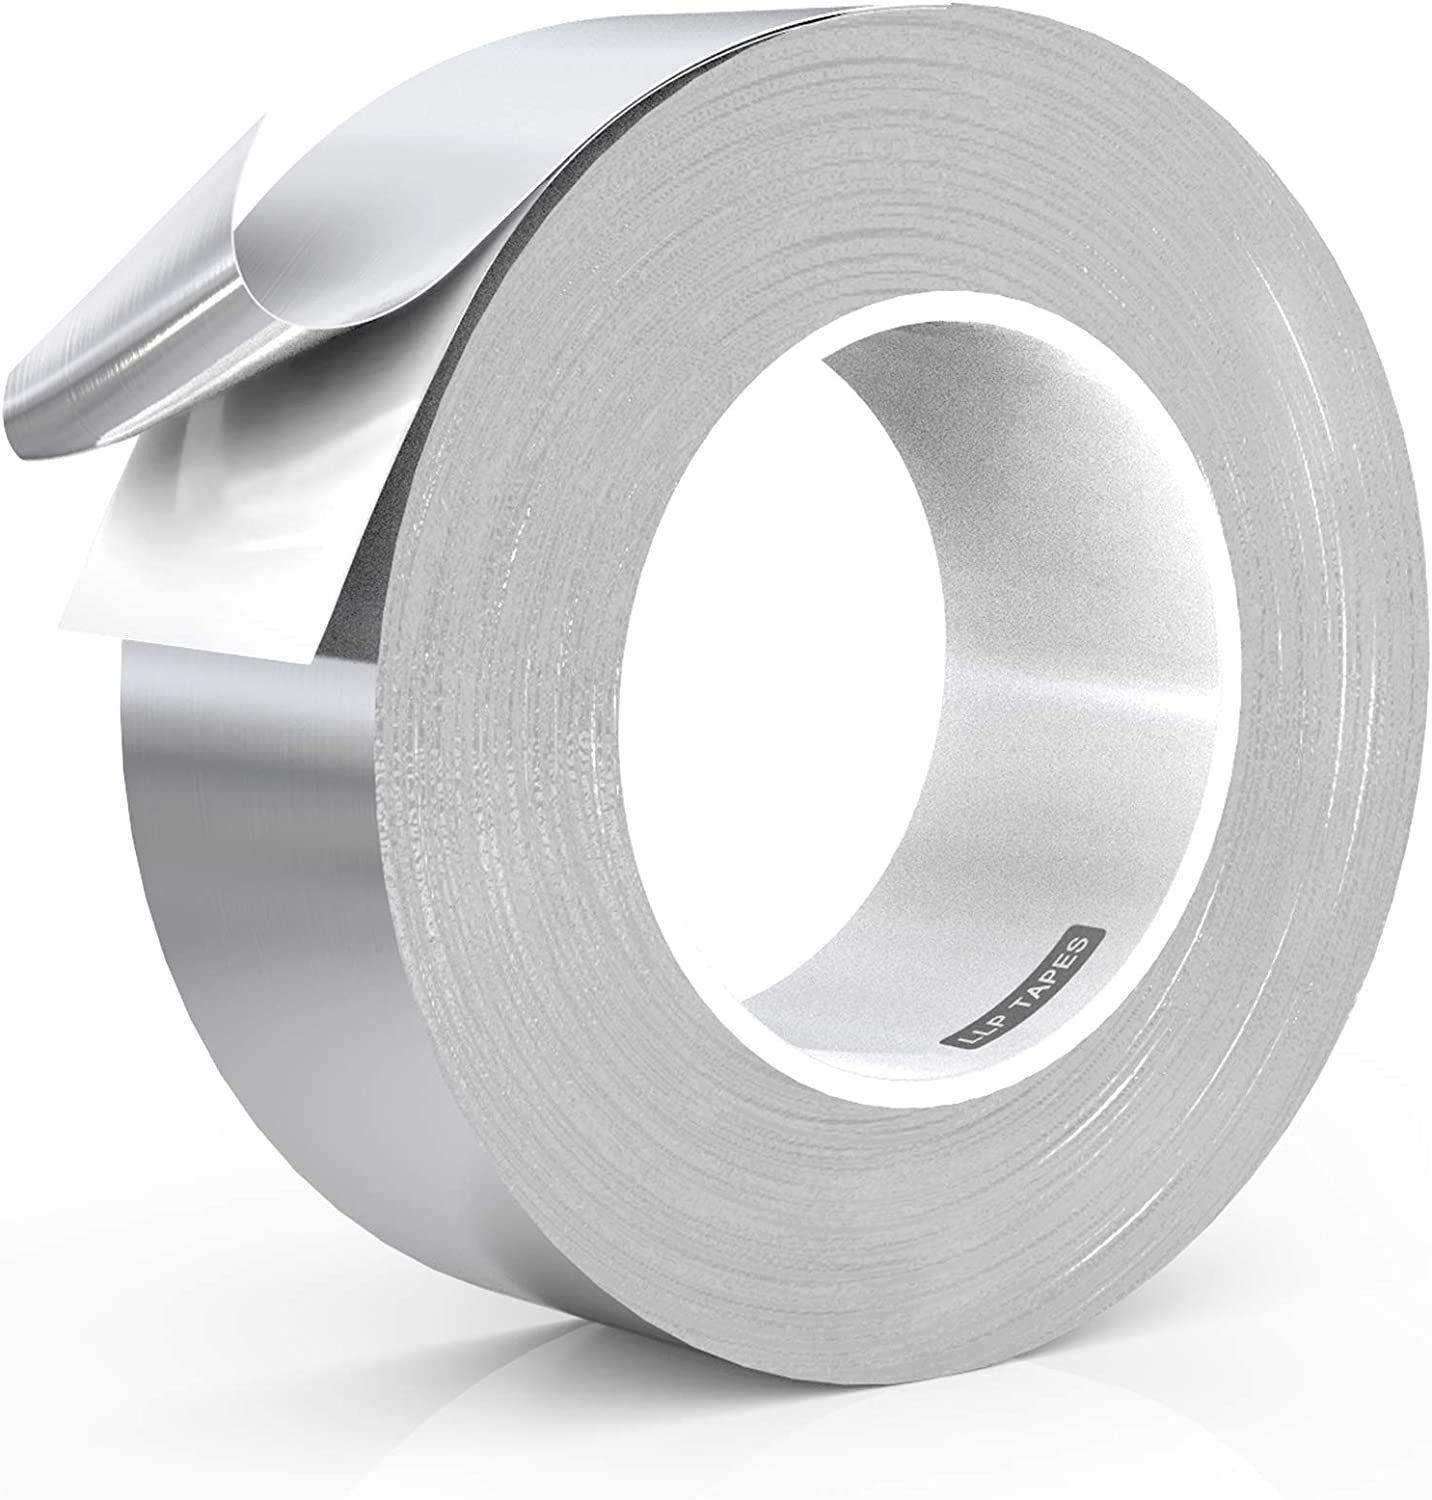 LLPT Aluminum Foil Tape 2 Inches x 55 Yards 3.94 Mil High Temp Heavy Duty Adhesive HVAC Sealing Hot Cold Air Duct Tape for Pipe Metal Repair (A2155)